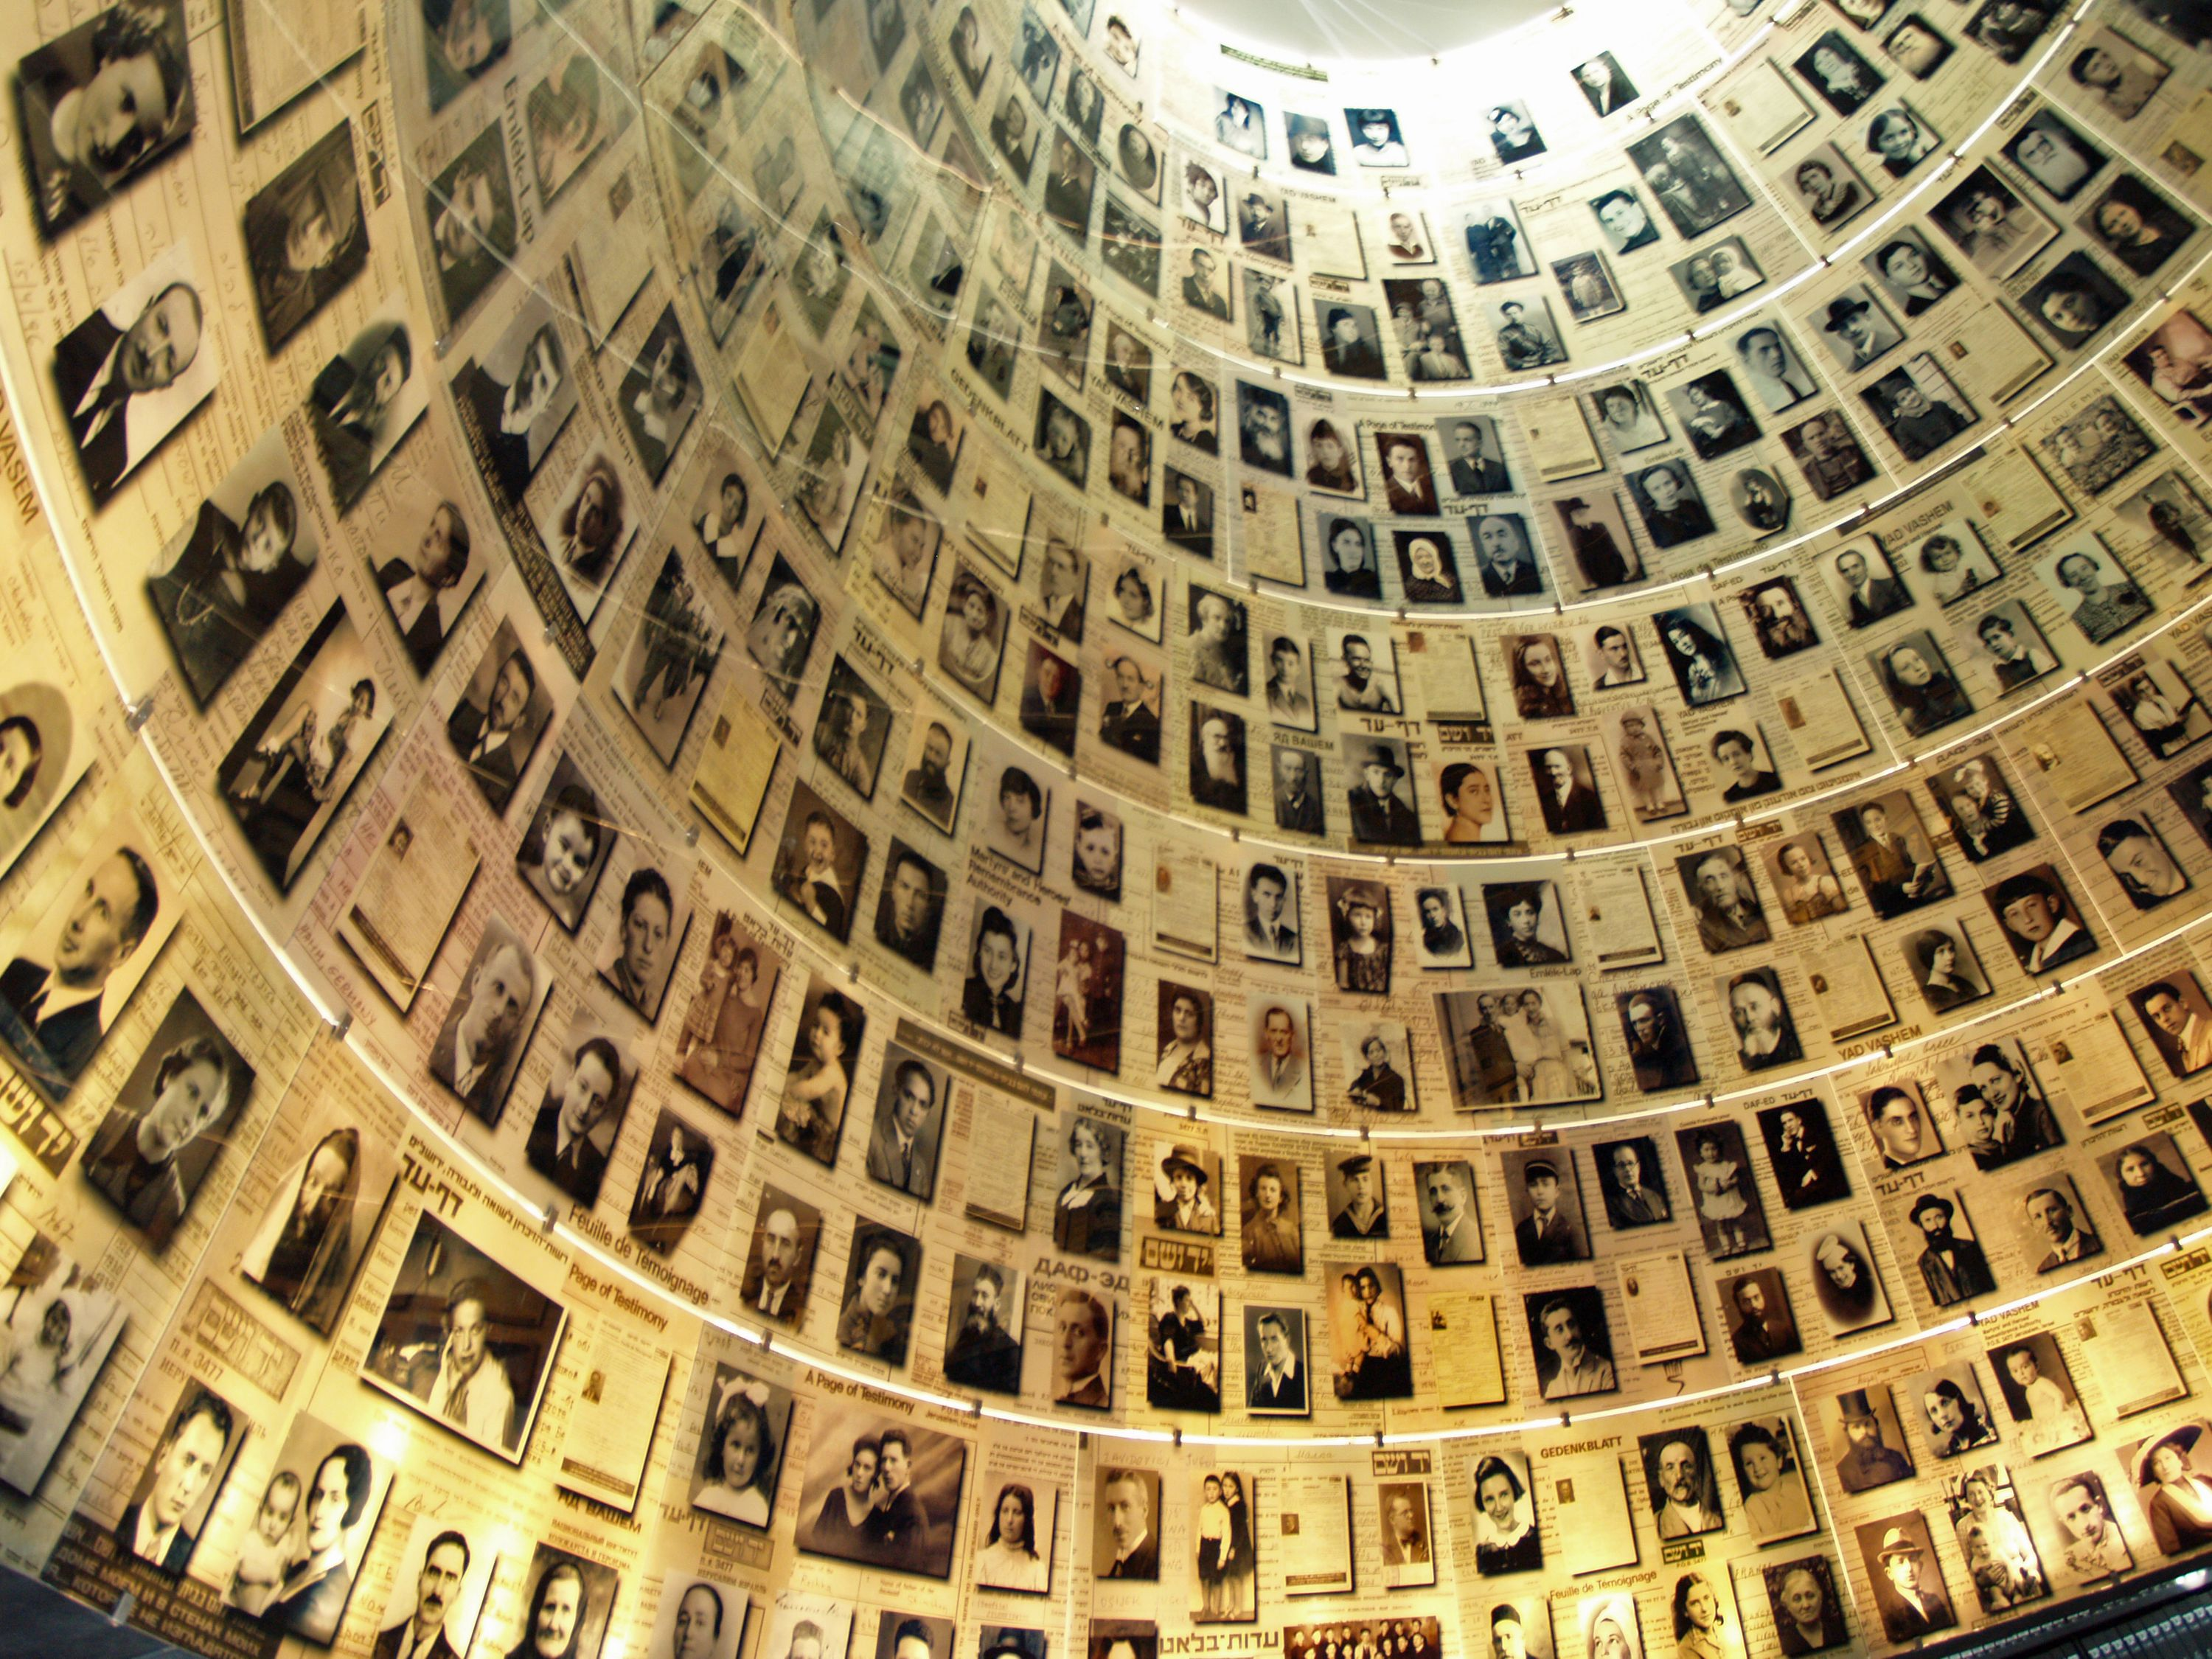 Yad Vashem Hall of Names by David Shankbone - Wikimedia Commons